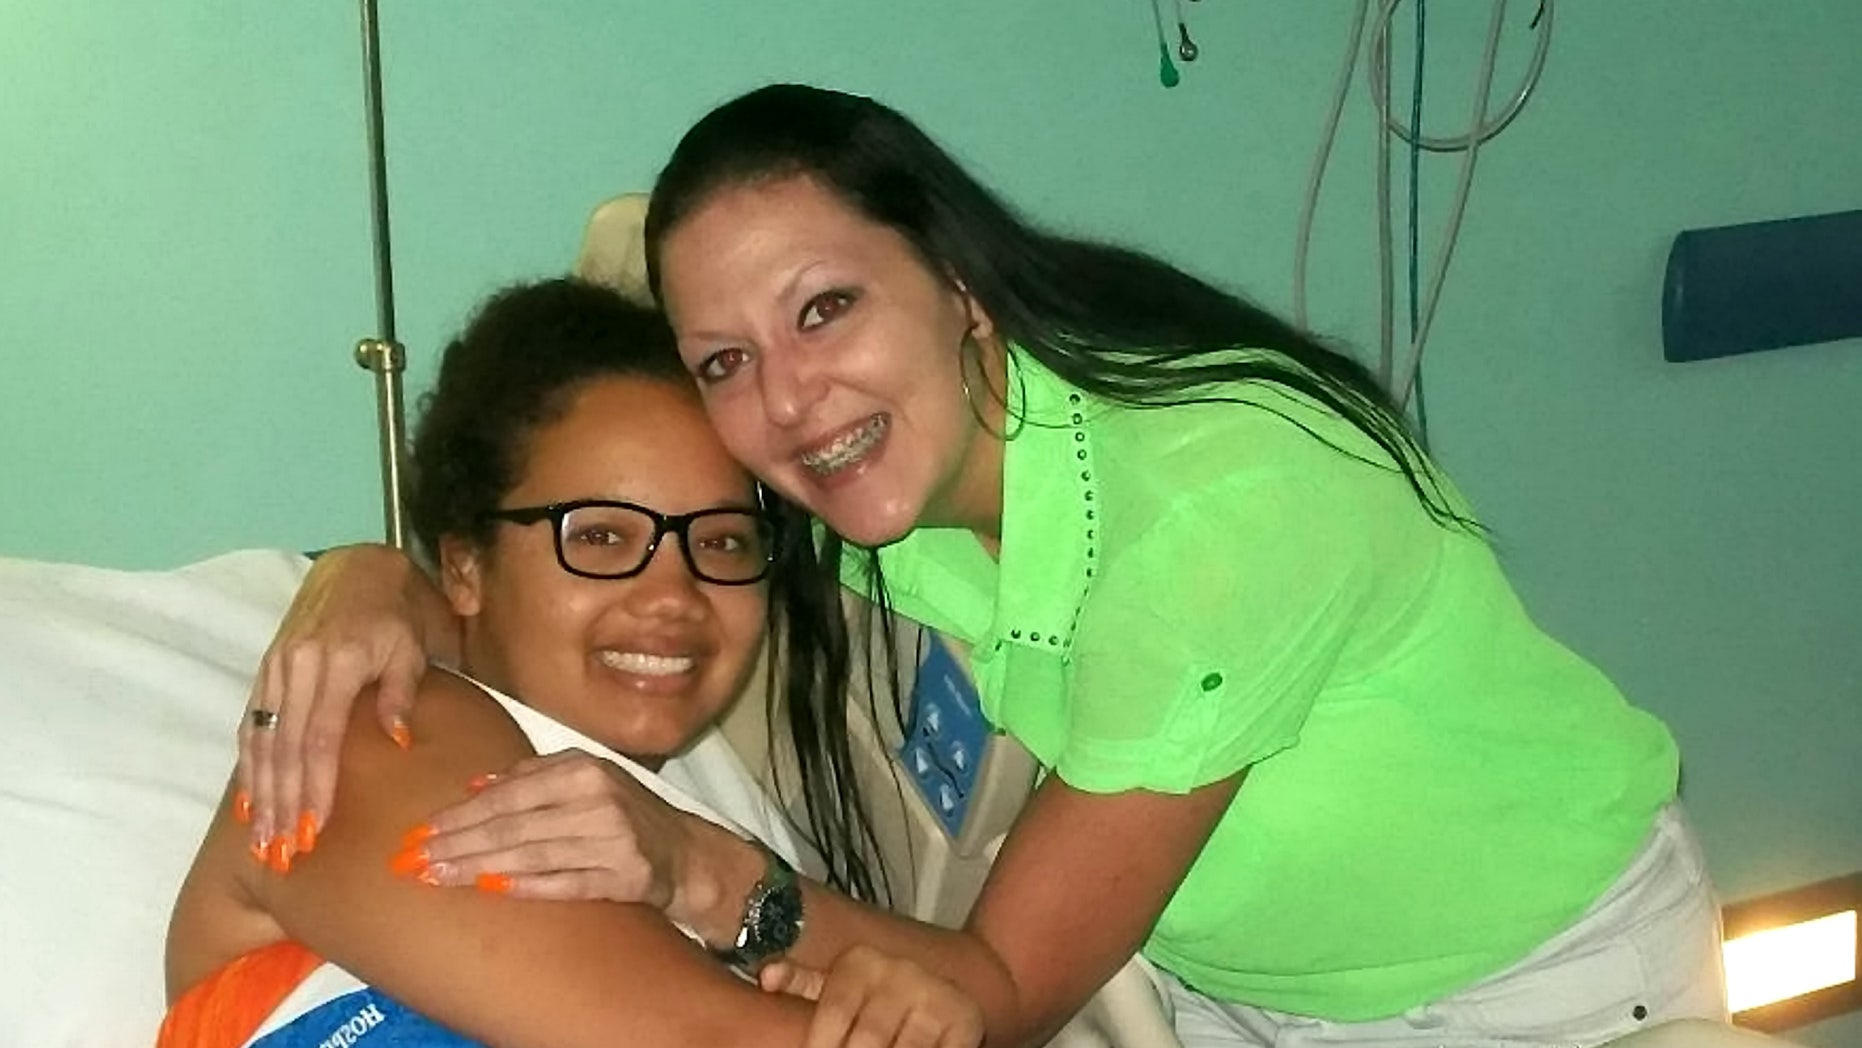 Gabrielle Newell, pictured with her aunt while in the hospital, said reconnecting with her faith in 2016 helped her find closure and forgiveness.